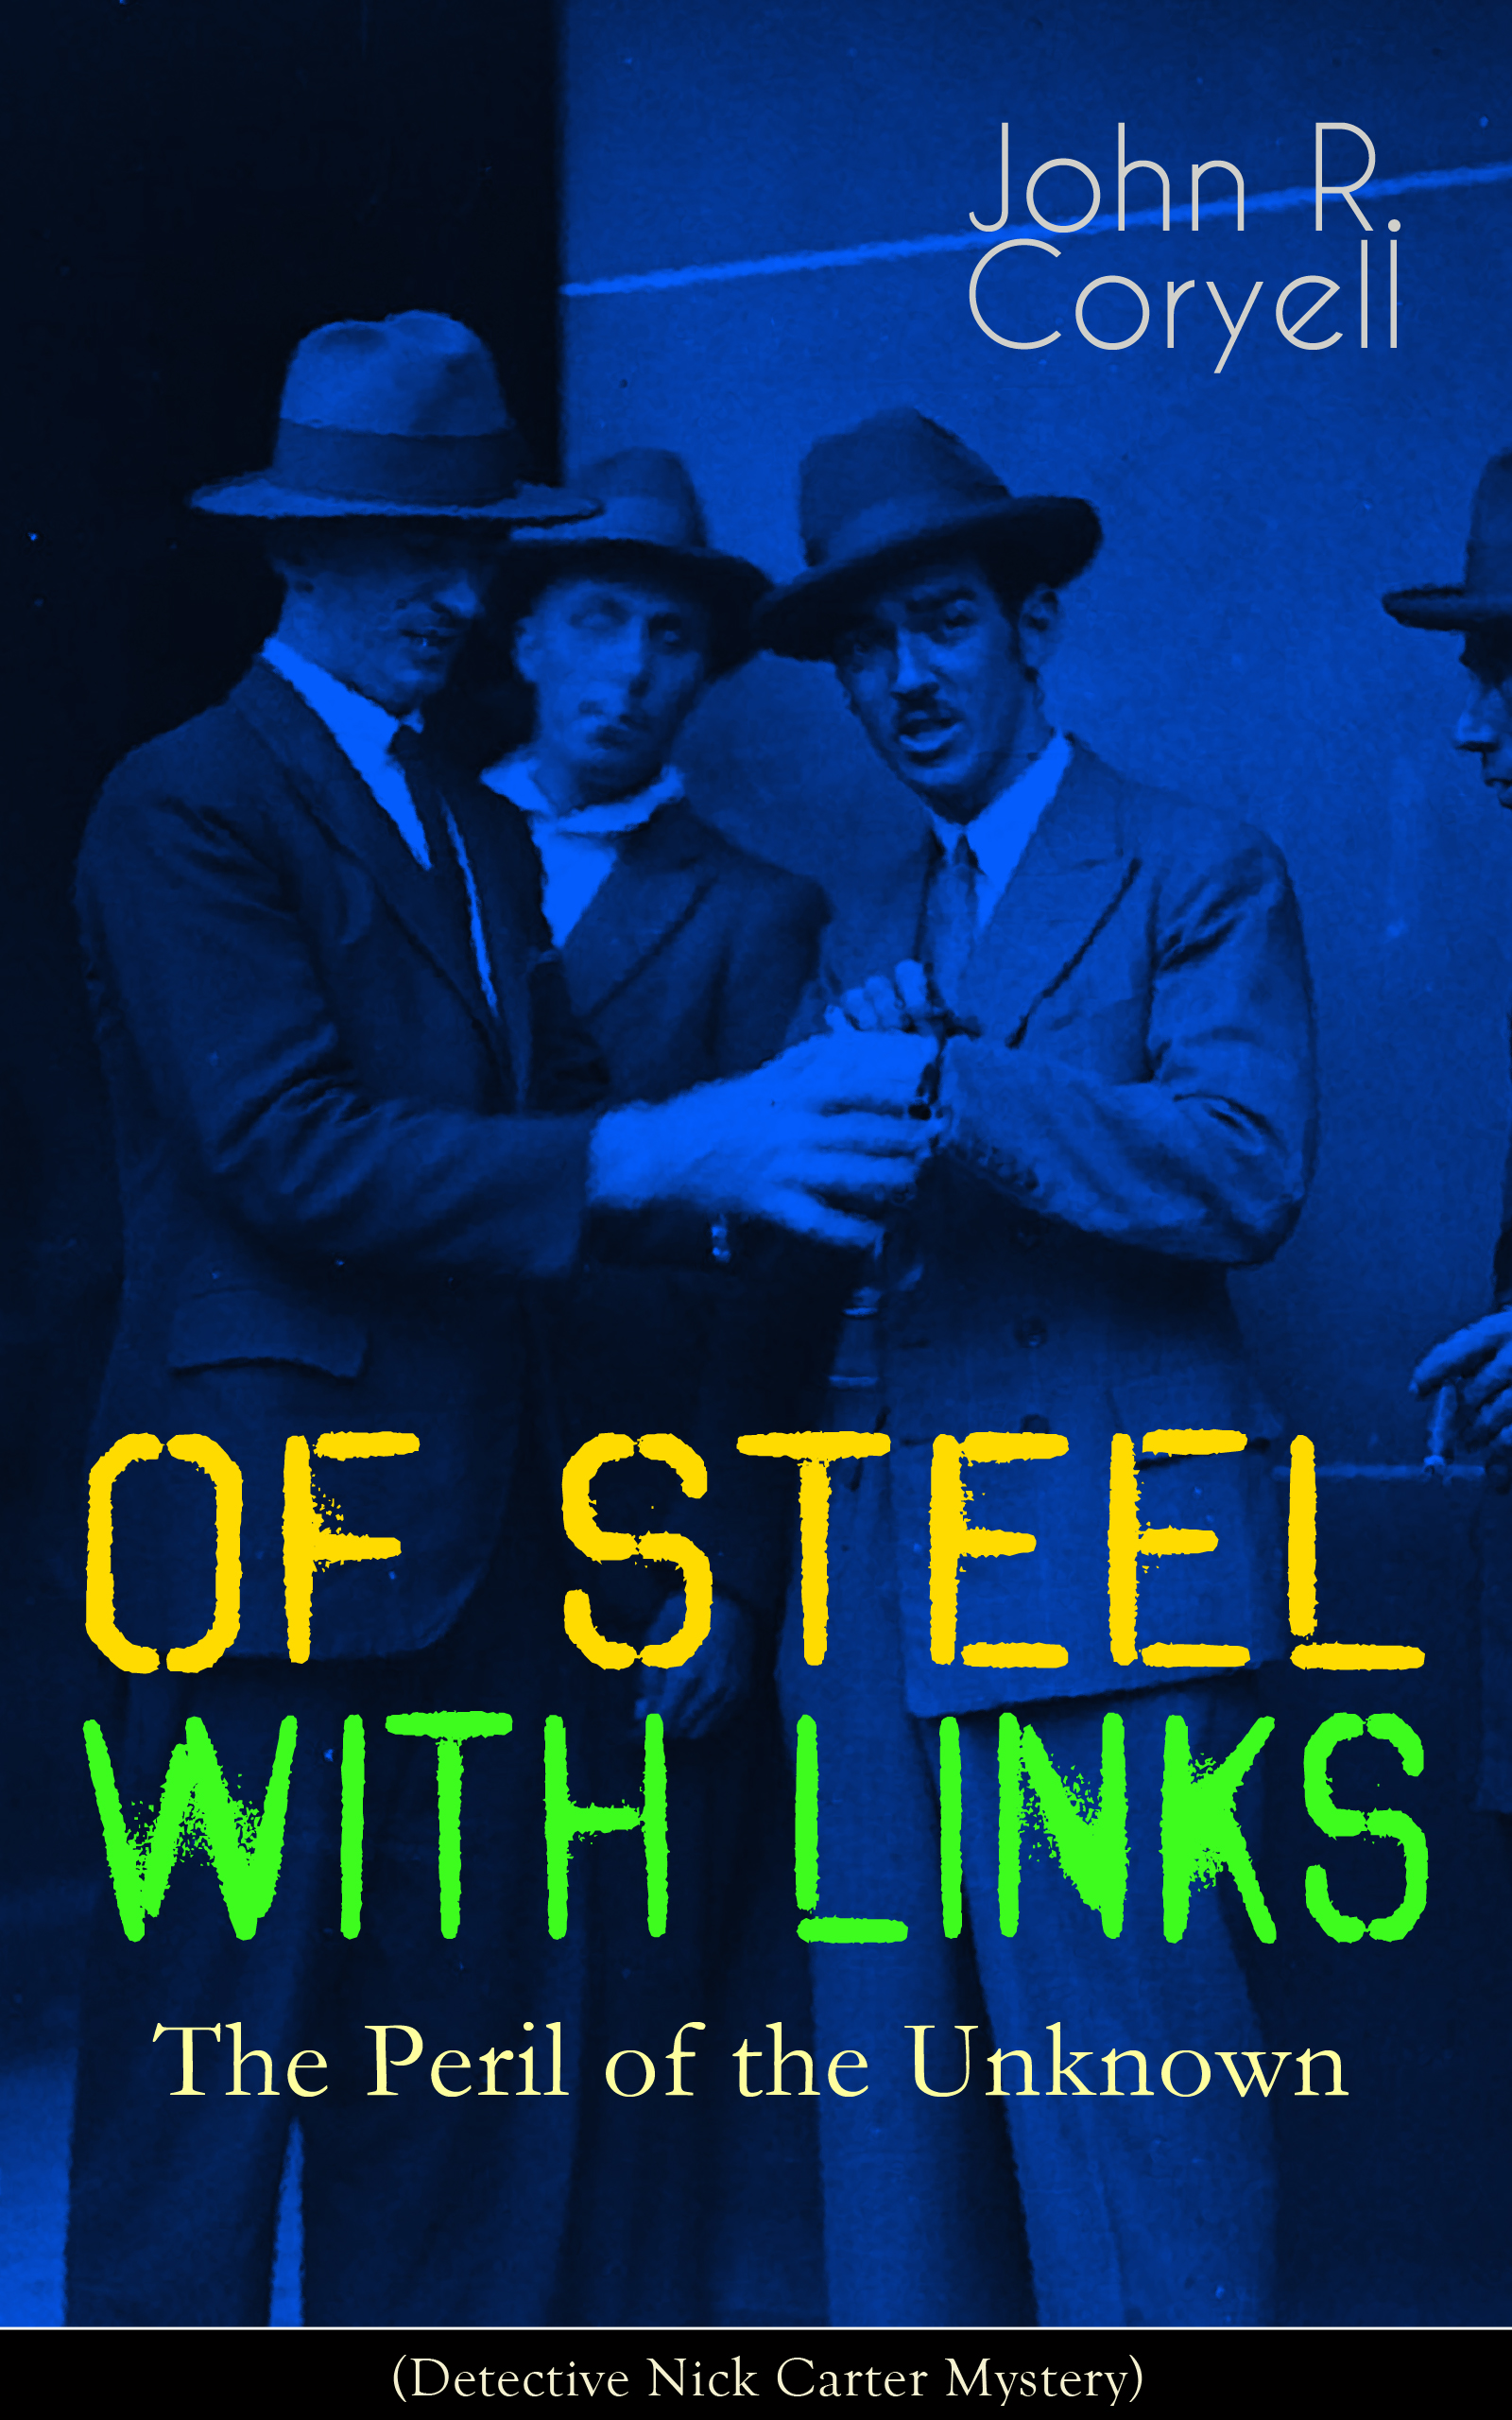 цена на John R. Coryell WITH LINKS OF STEEL - The Peril of the Unknown (Detective Nick Carter Mystery)